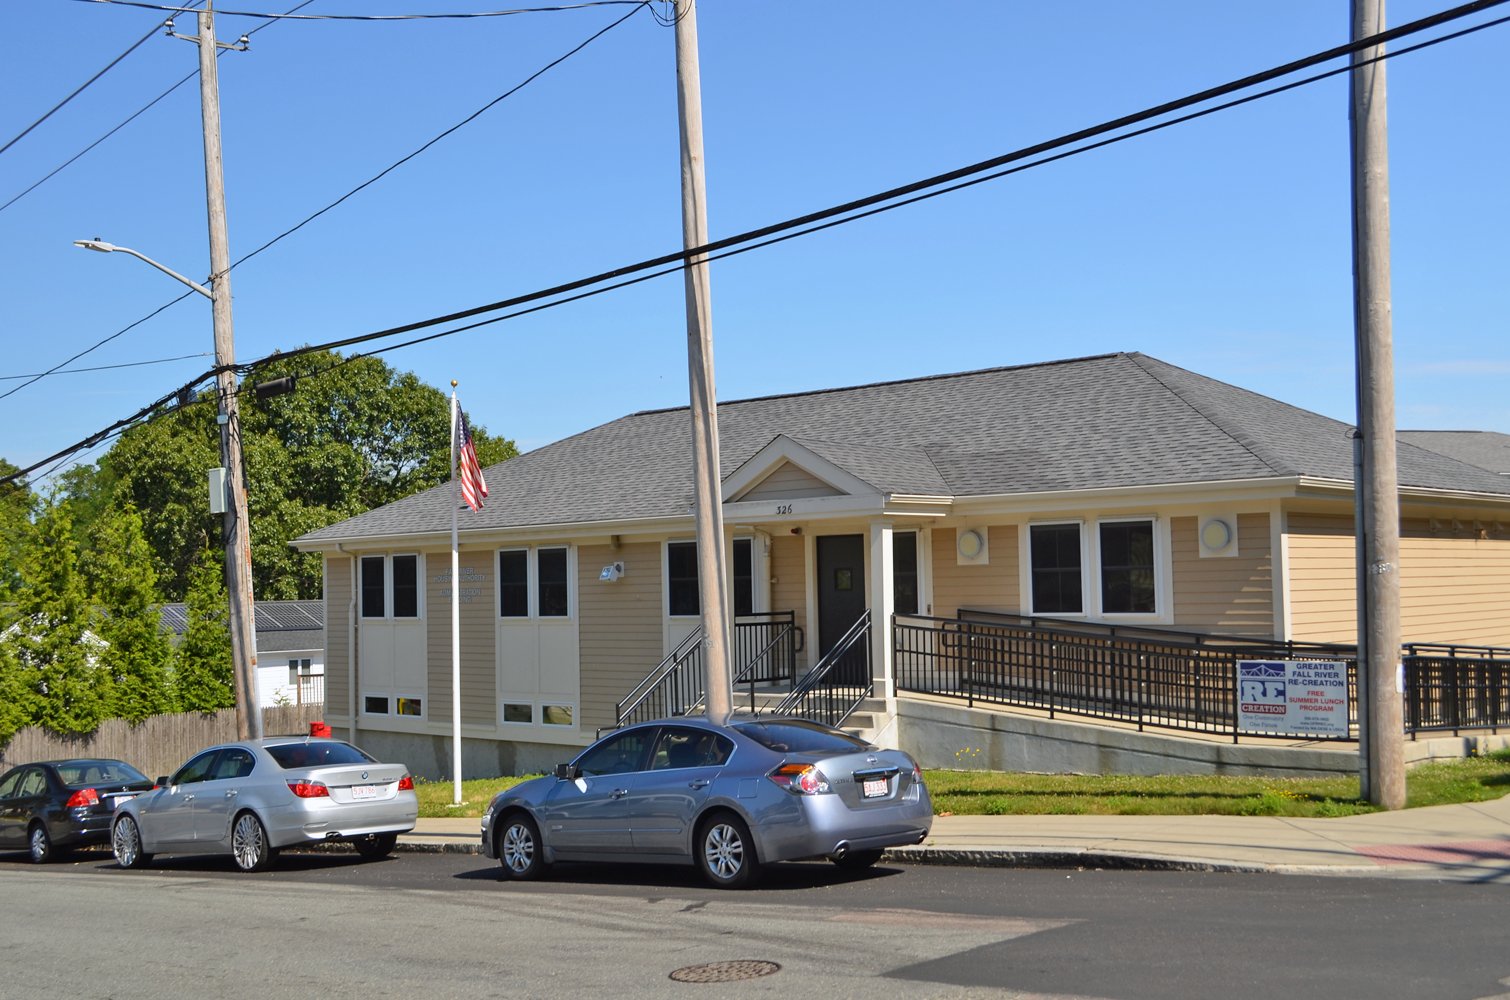 Image of Pleasant View in Fall River, Massachusetts